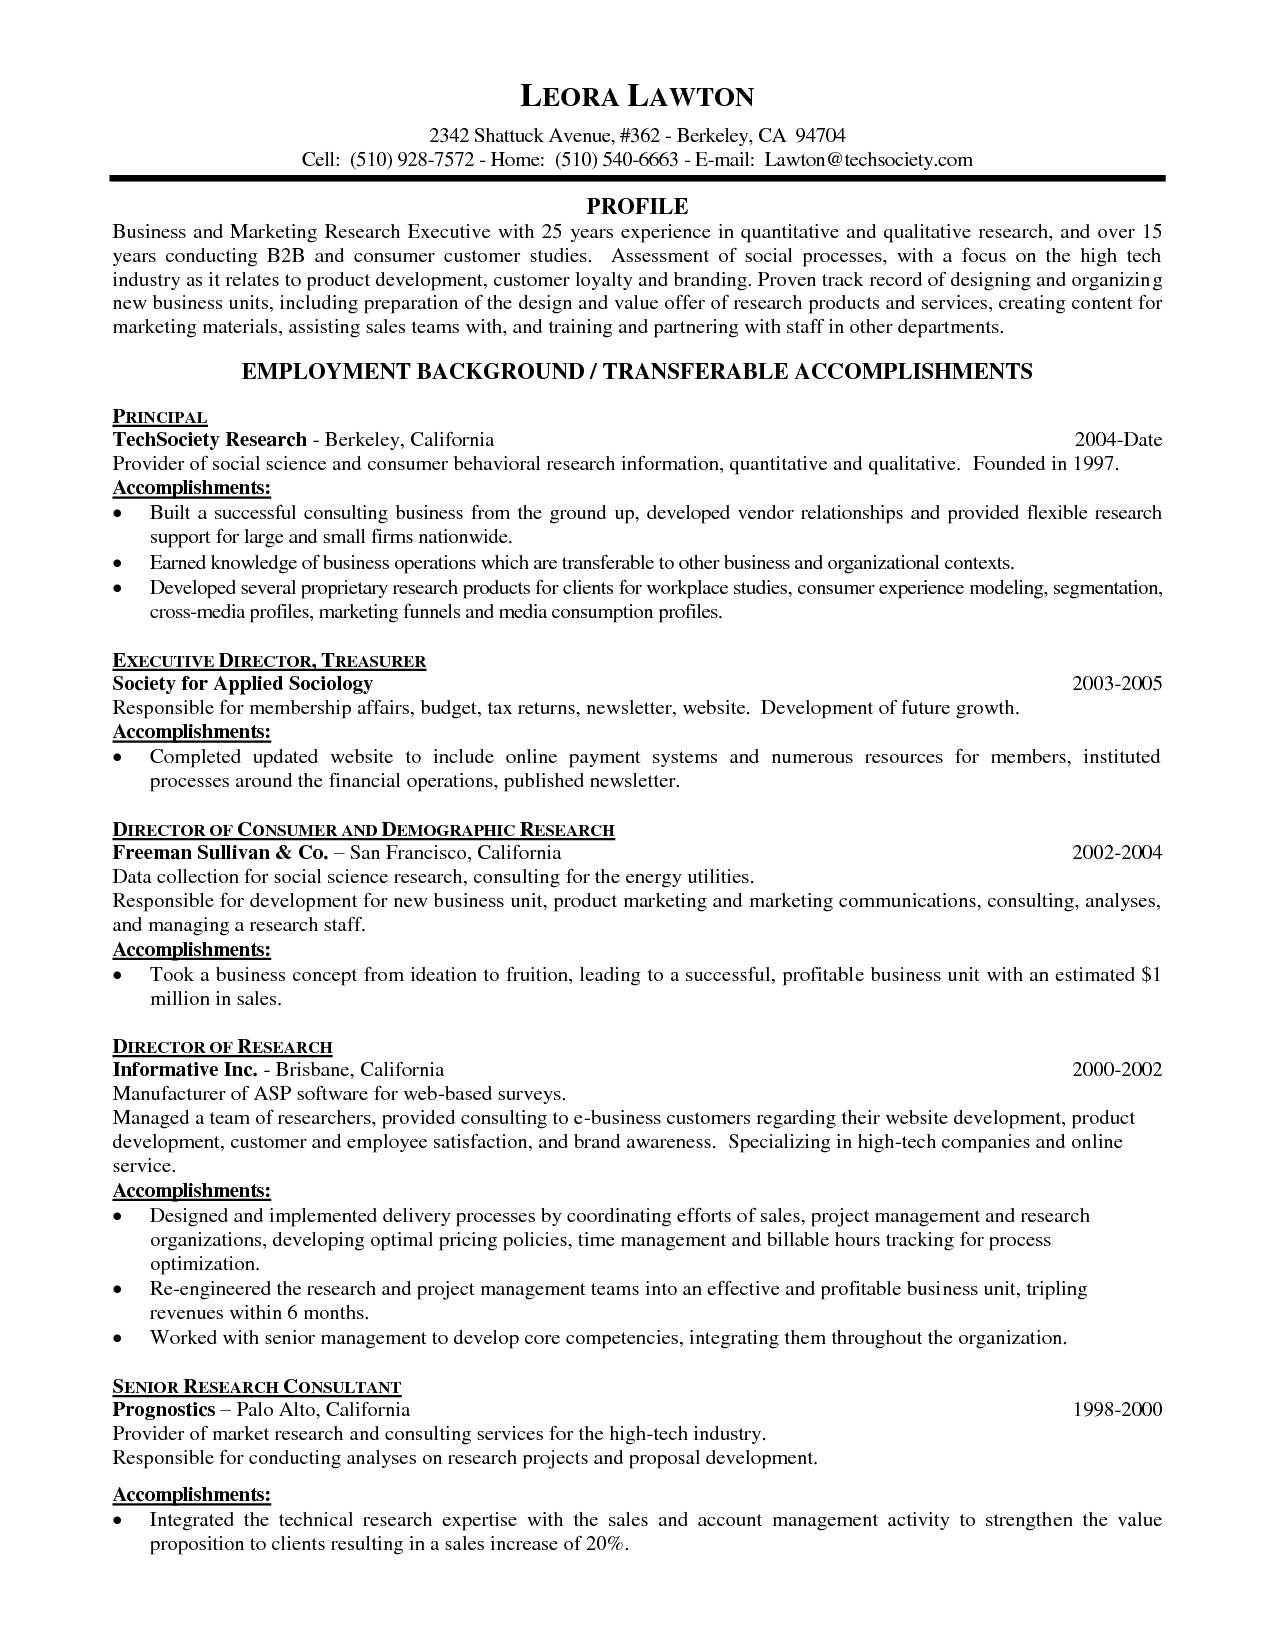 Veterinarian Resume Vet Tech Resume Sample Veterinary Technician Examples Templates